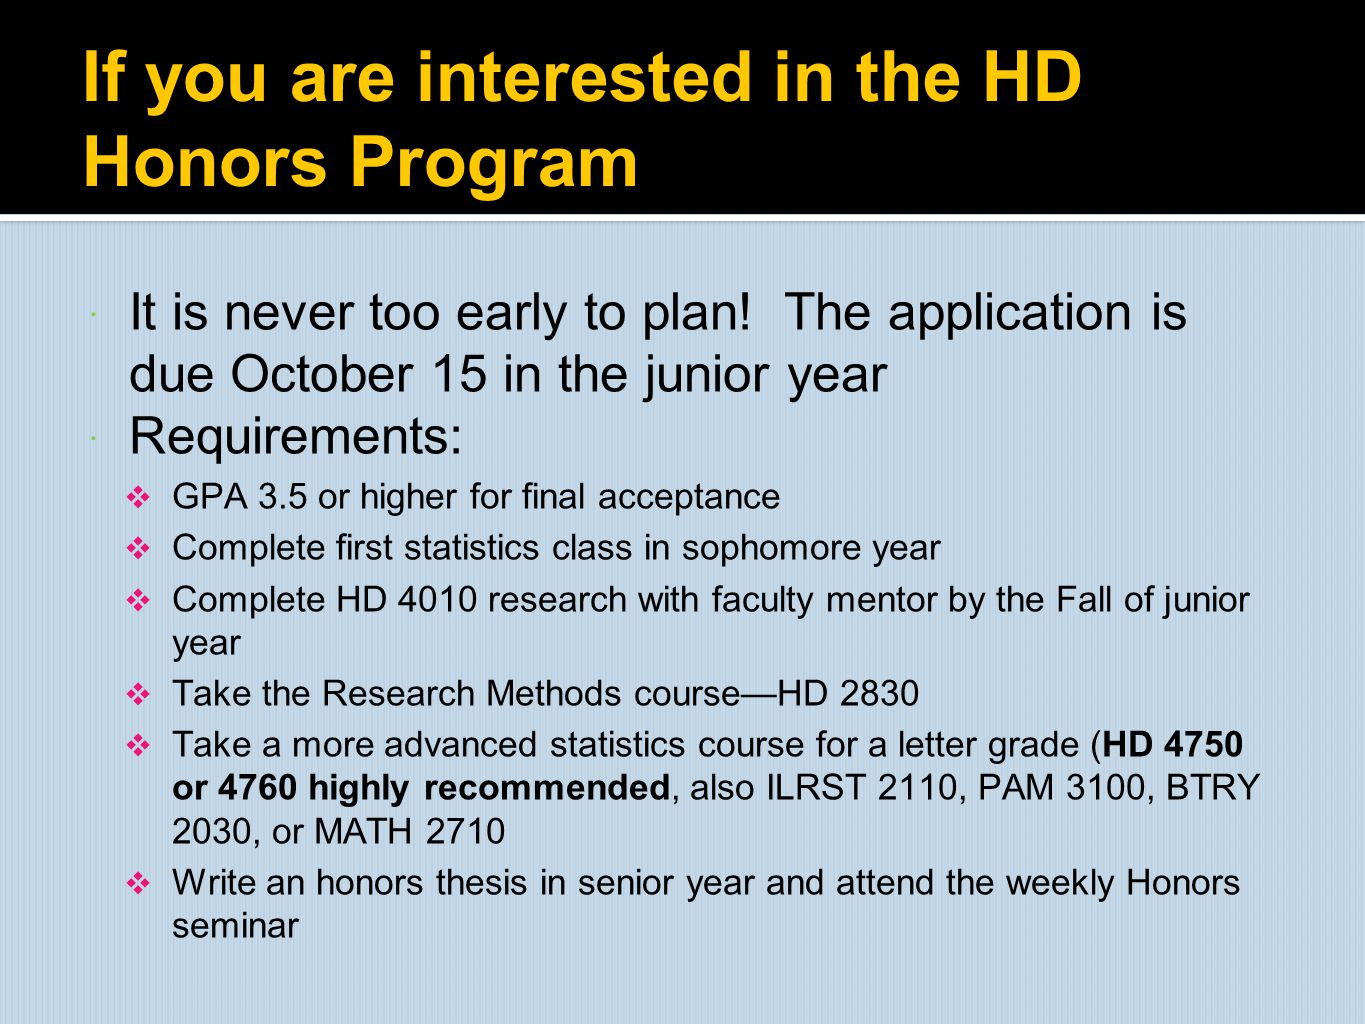 If you are interested in the HD Honors Program